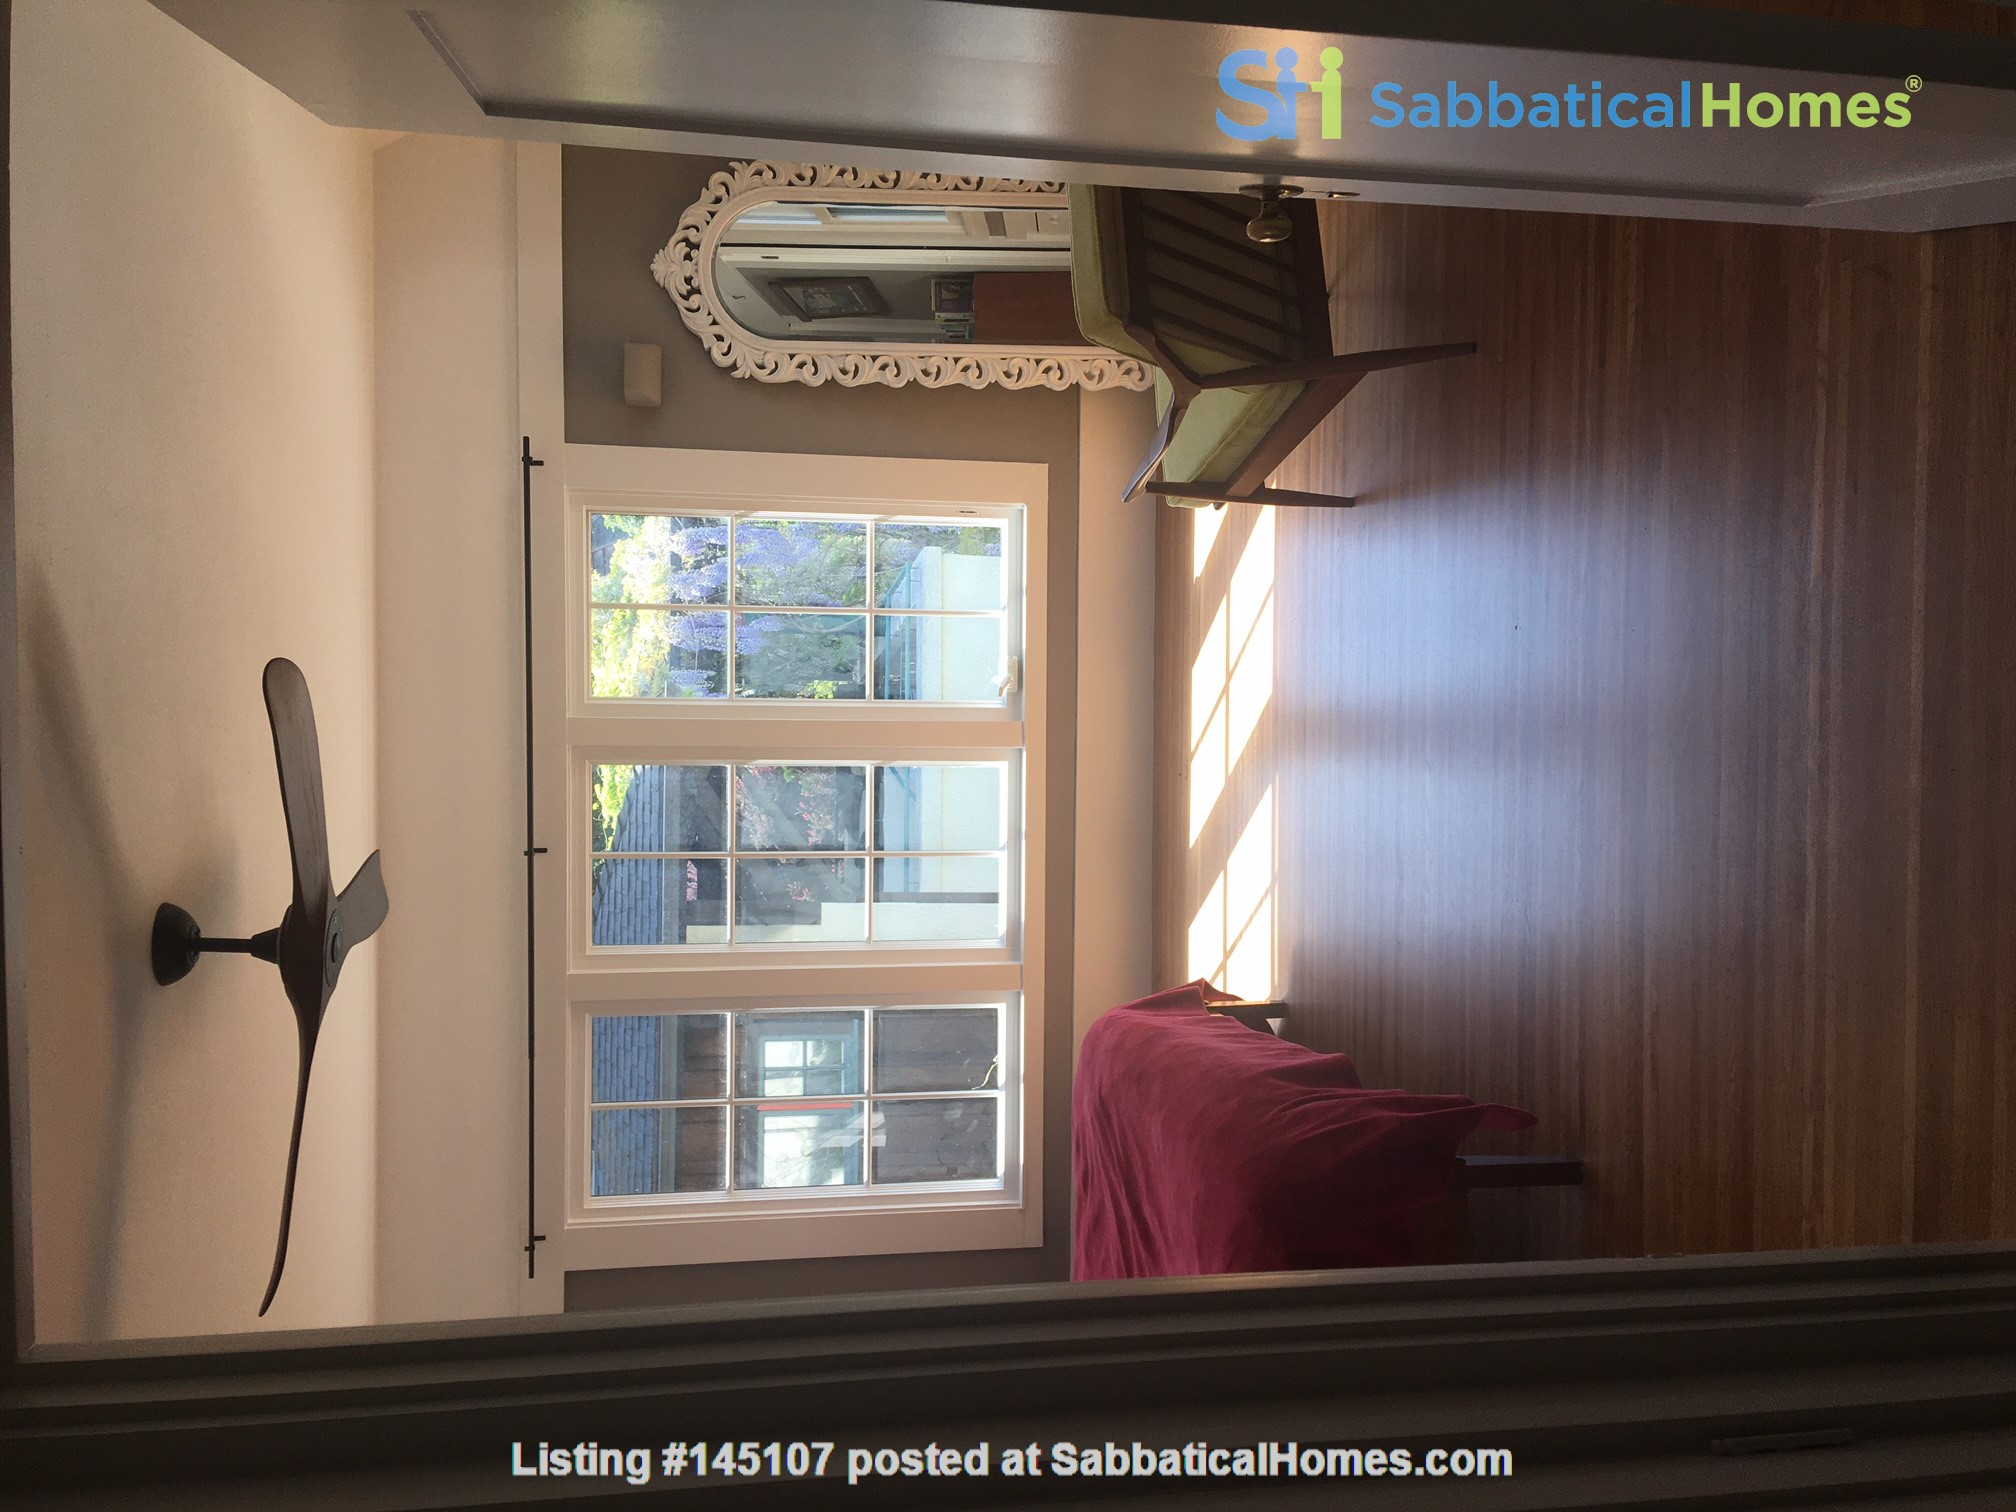 Charming fairy tales style townhouse nestled in the Berkeley Hills. Home Rental in Berkeley, California, United States 4